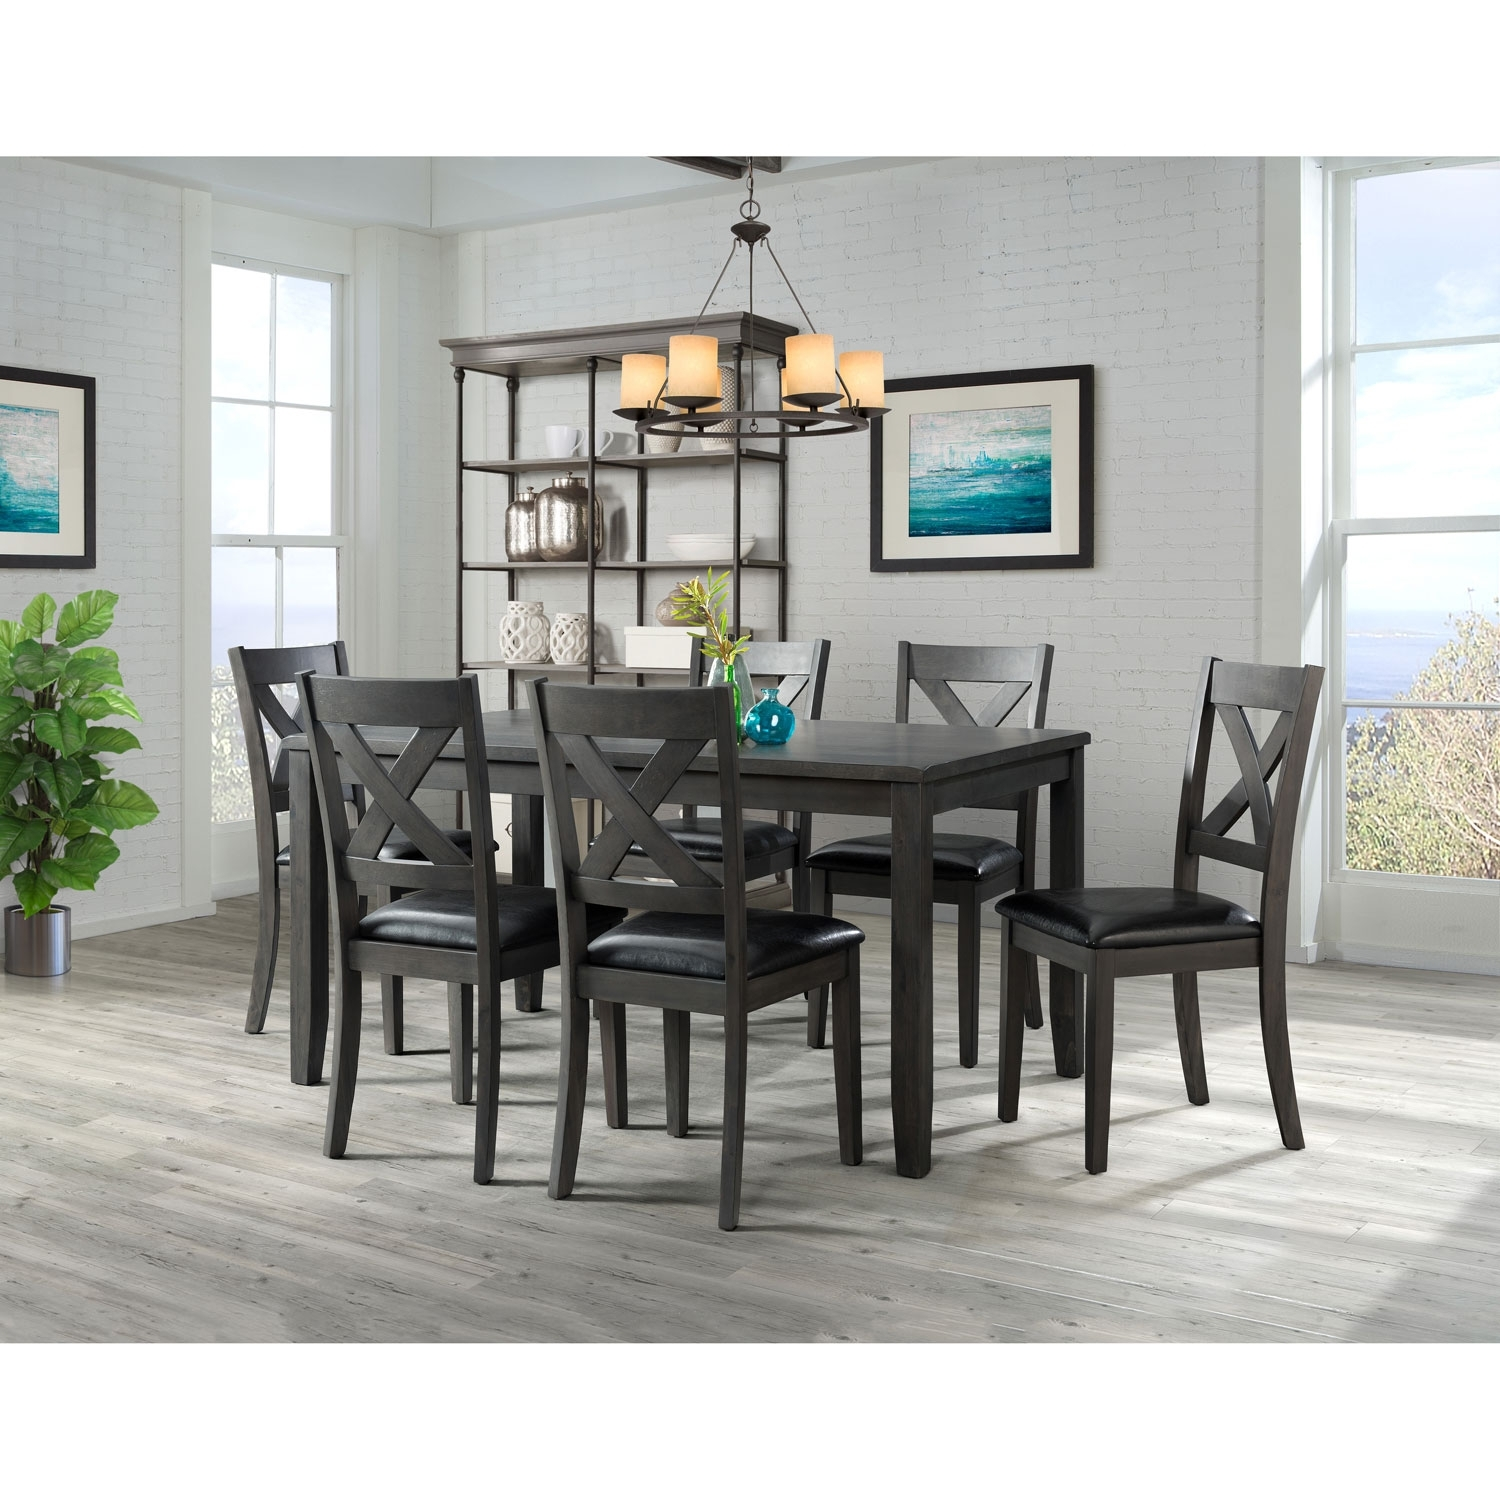 Alexa Transitional 7 Piece Dining Set – Grey : Dining Sets – Best Throughout Most Recent Alexa Grey Side Chairs (#7 of 20)